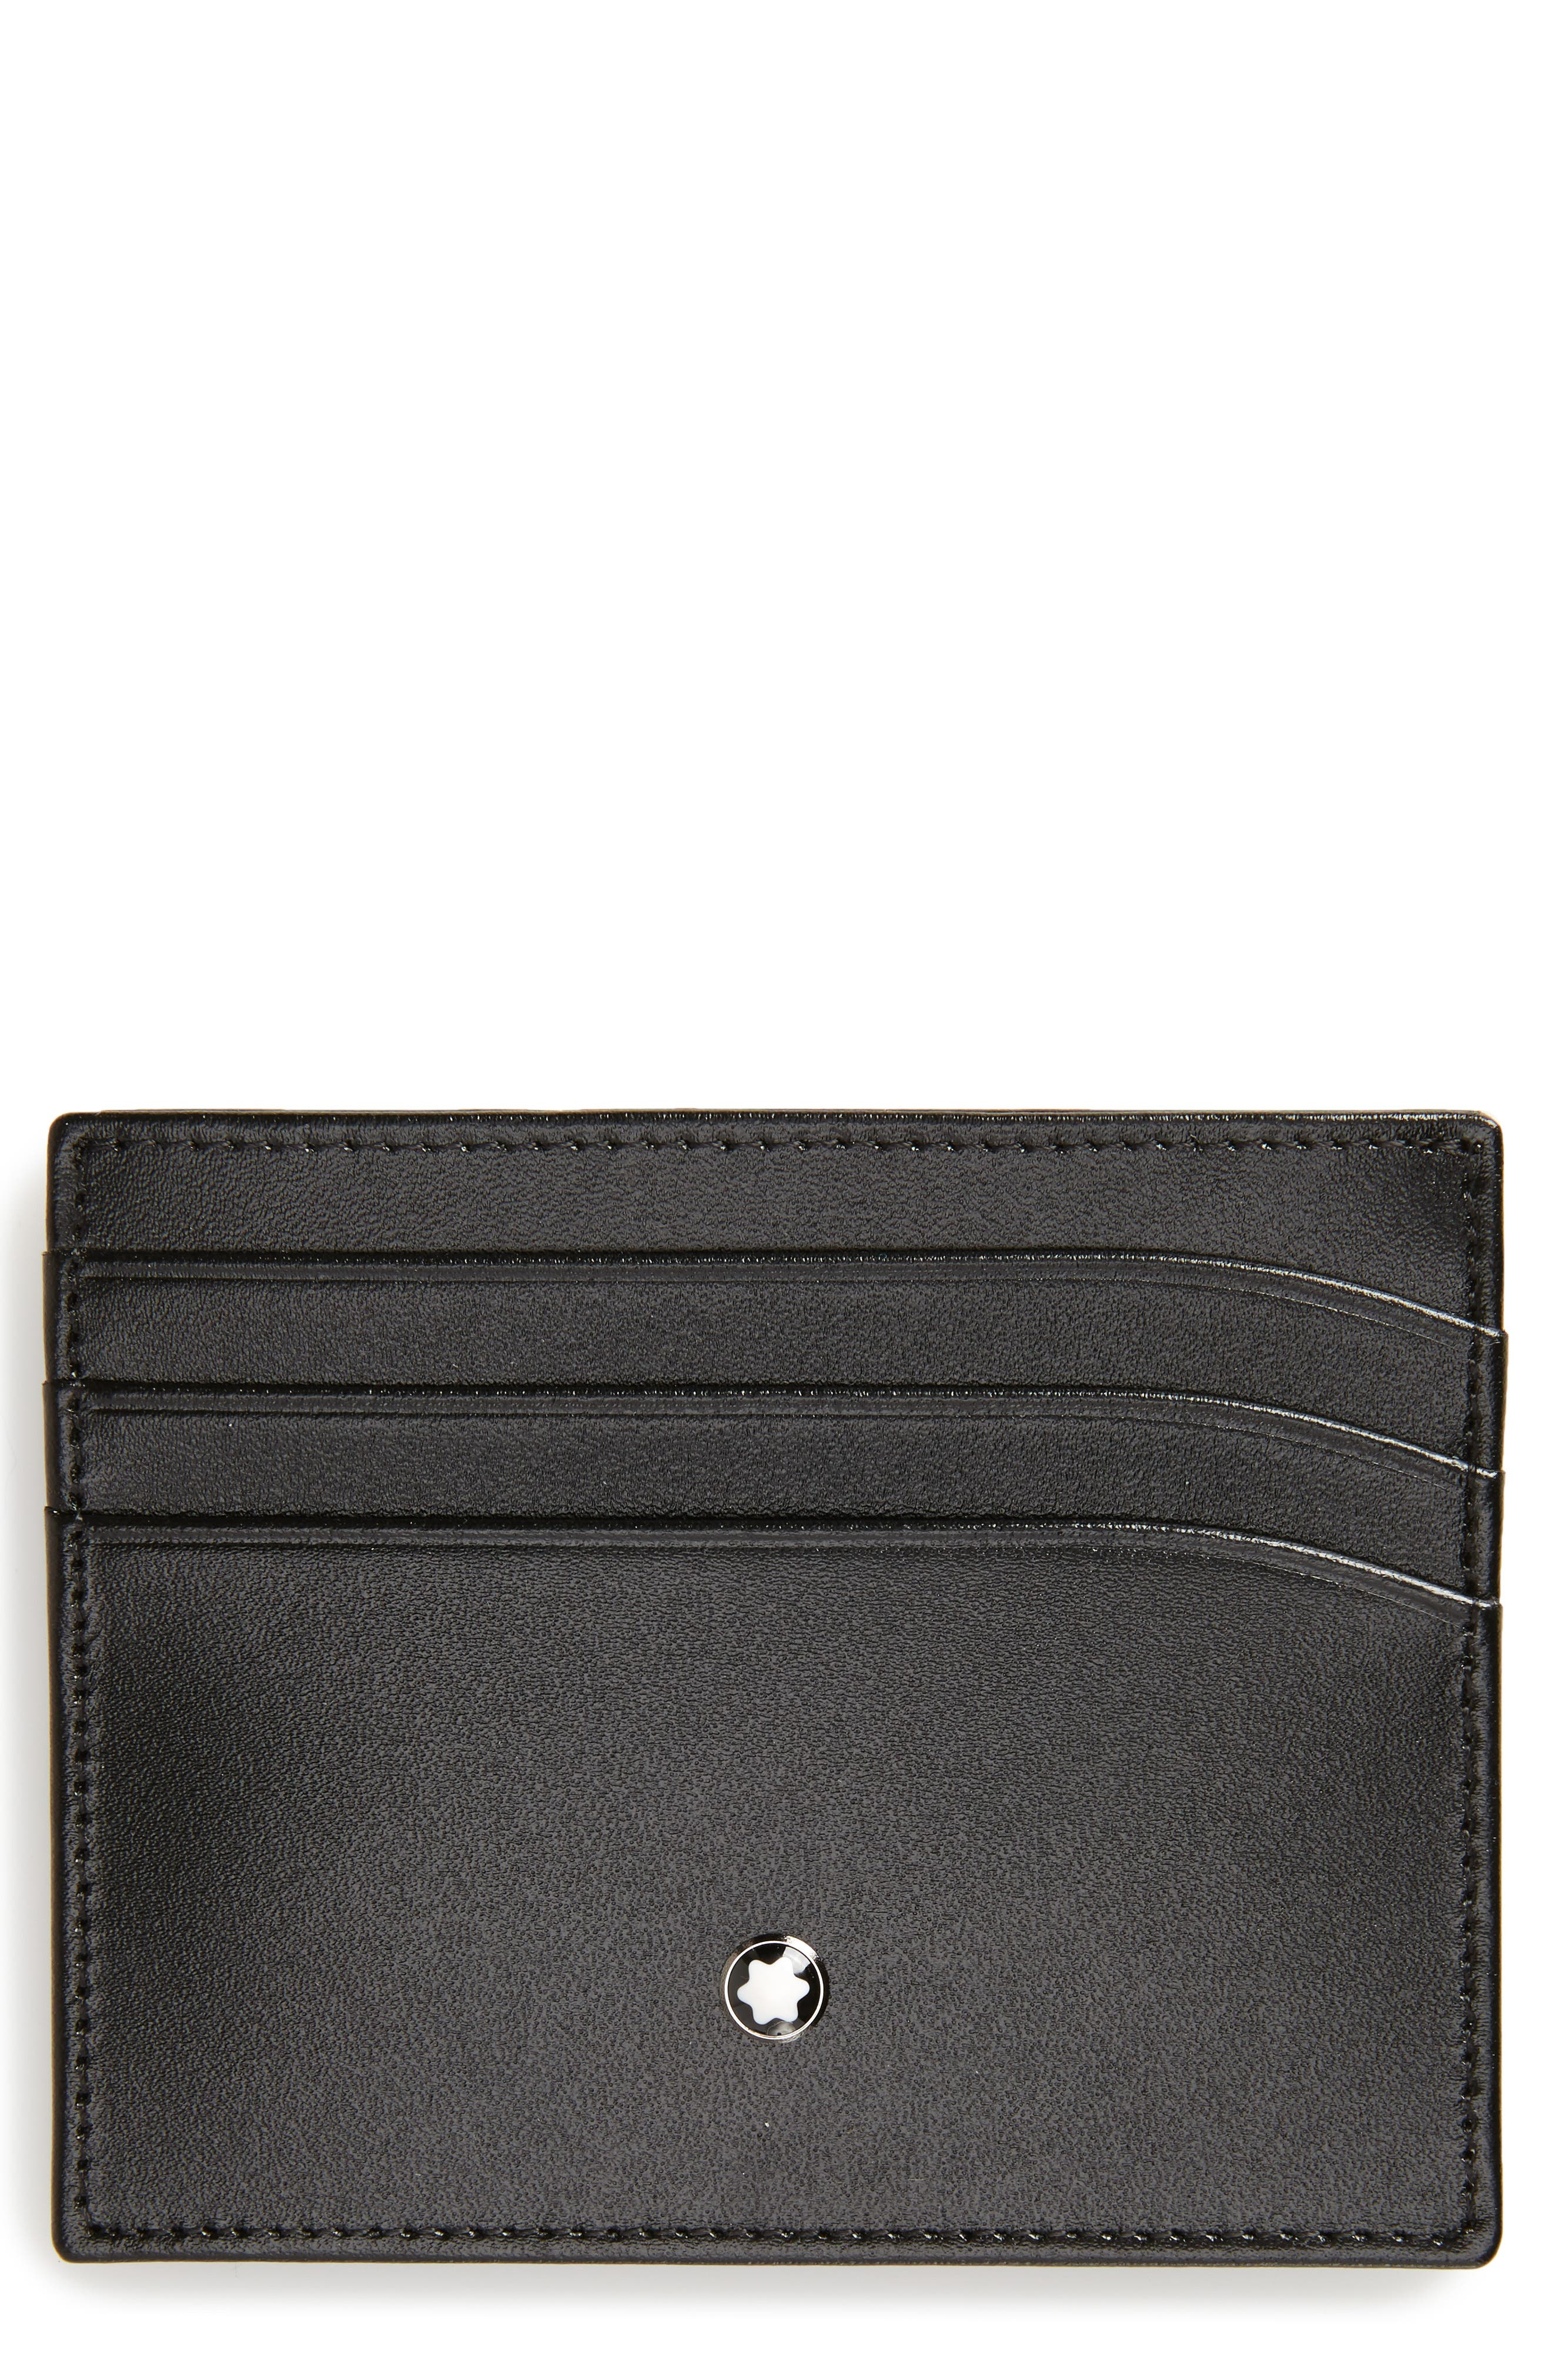 MONTBLANC Meisterstück Leather Card Case, Main, color, 001